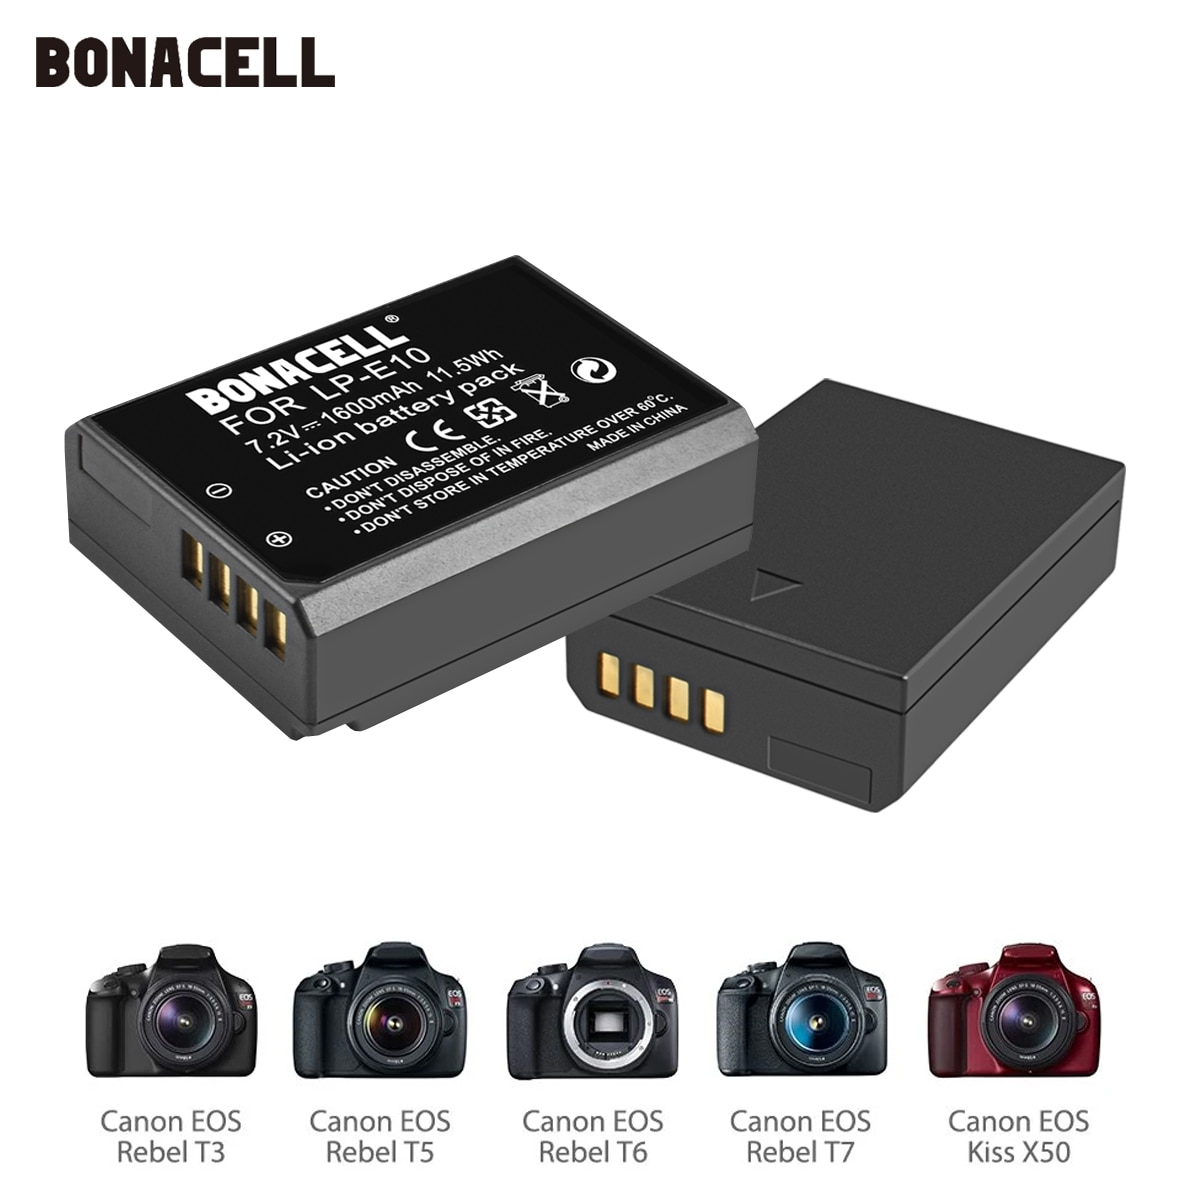 Bonacell LP-E10 LPE10 LP E10 Digital camera battery for Canon EOS 1100D 1200D 1300D 2000D Rebel T3 T5 T6 KISS X50 X70 Battery L5 2pc 1500mah lp e10 lp e10 lpe10 rechargeable li ion battery charger set for canon 1100d 1200d kiss x50 x70 rebel t3 t5 camera